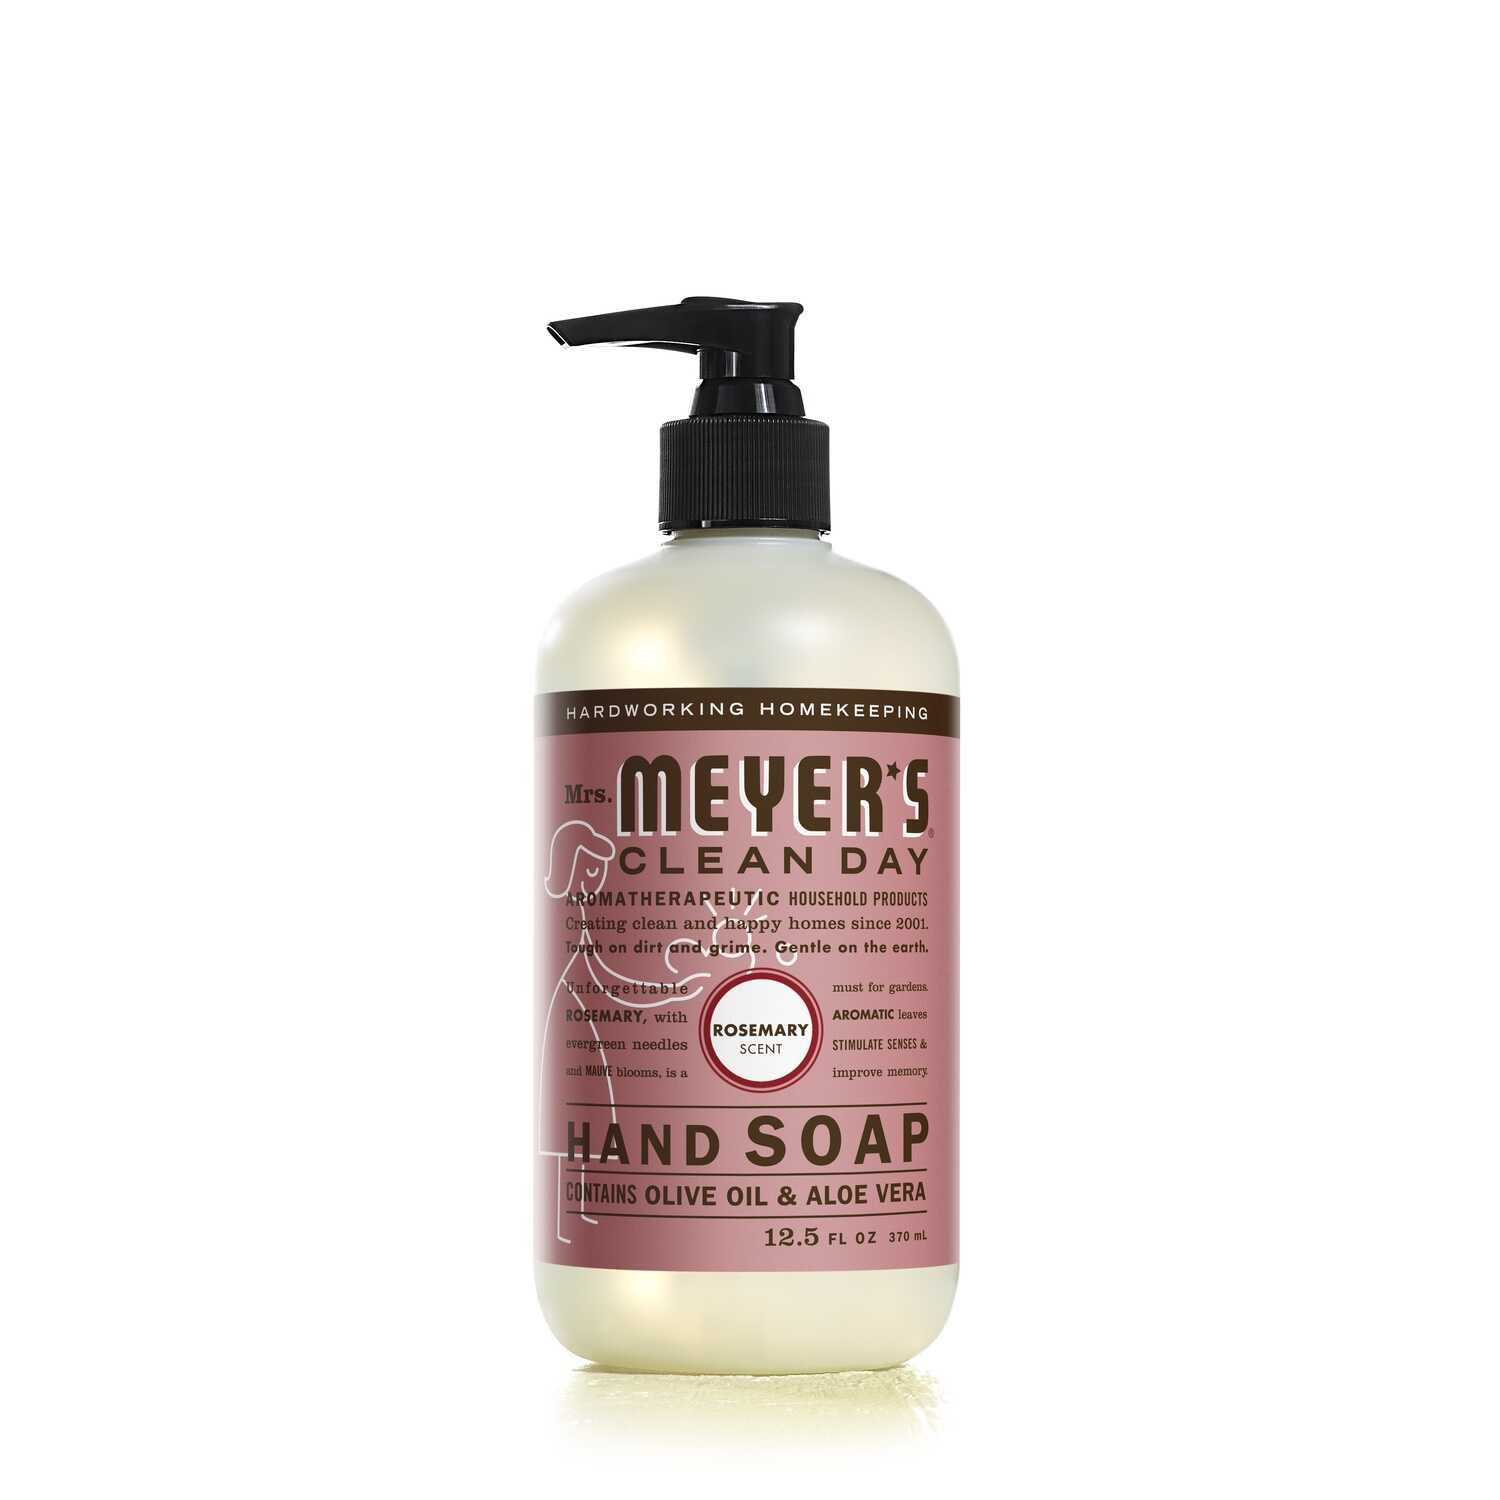 Mrs. Meyer's  Clean Day  Organic Rosemary Scent Liquid Hand Soap  12.5